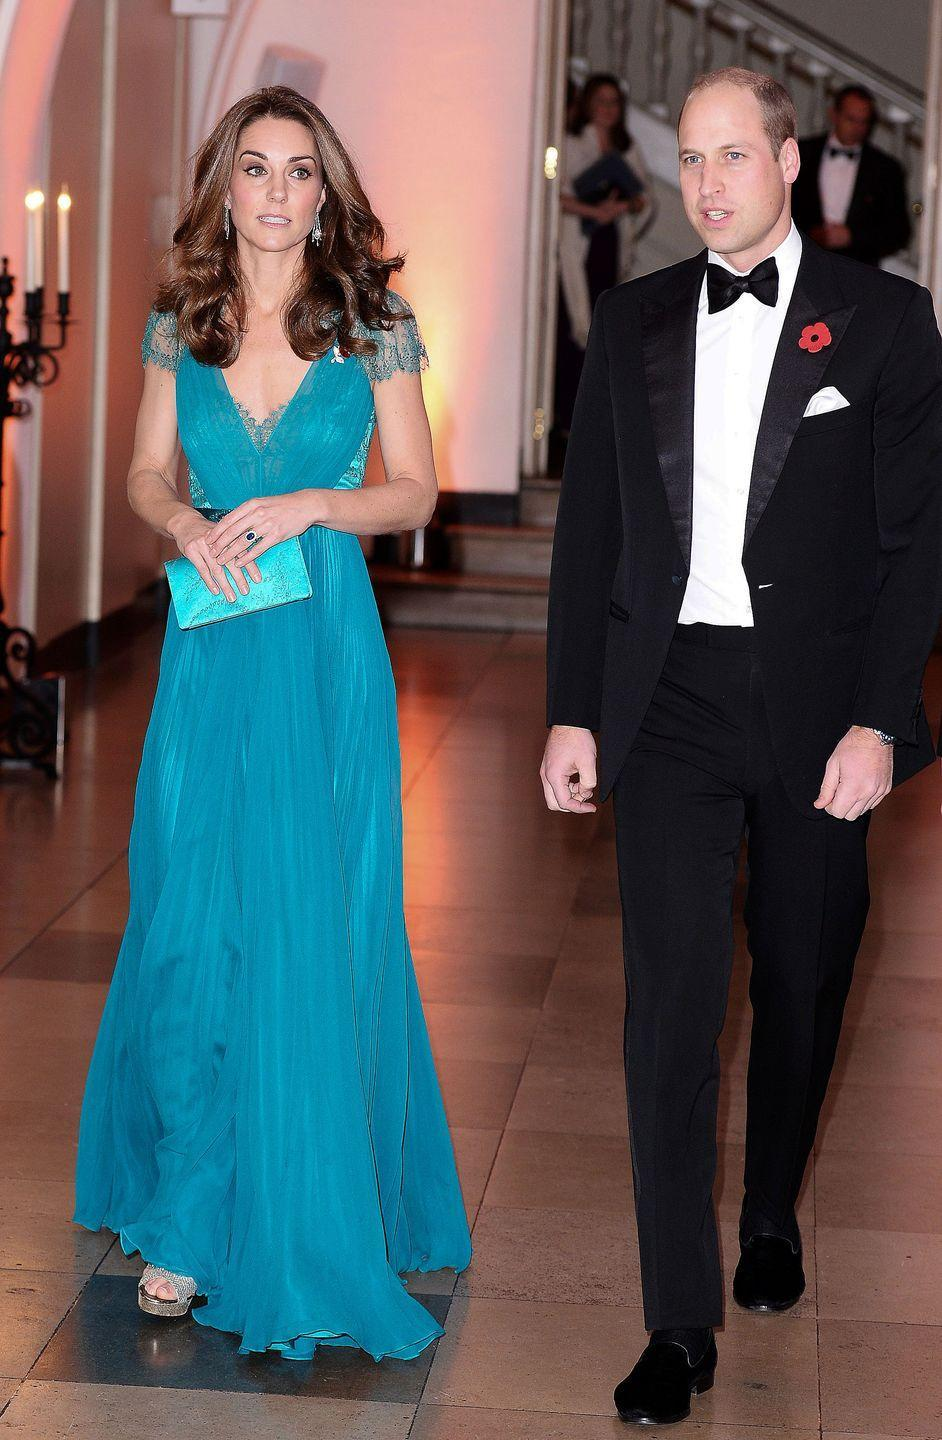 """<p>The Duchess of Cambridge recycled <a href=""""https://www.townandcountrymag.com/style/fashion-trends/a24753075/kate-middleton-jenny-packham-dress-tusk-conservation-awards-2018-photos/"""" rel=""""nofollow noopener"""" target=""""_blank"""" data-ylk=""""slk:a teal Jenny Packham gown"""" class=""""link rapid-noclick-resp"""">a teal Jenny Packham gown</a> for the Tusk Conservation Awards, which were held in London. Kate first wore the stunning dress in 2012.</p>"""